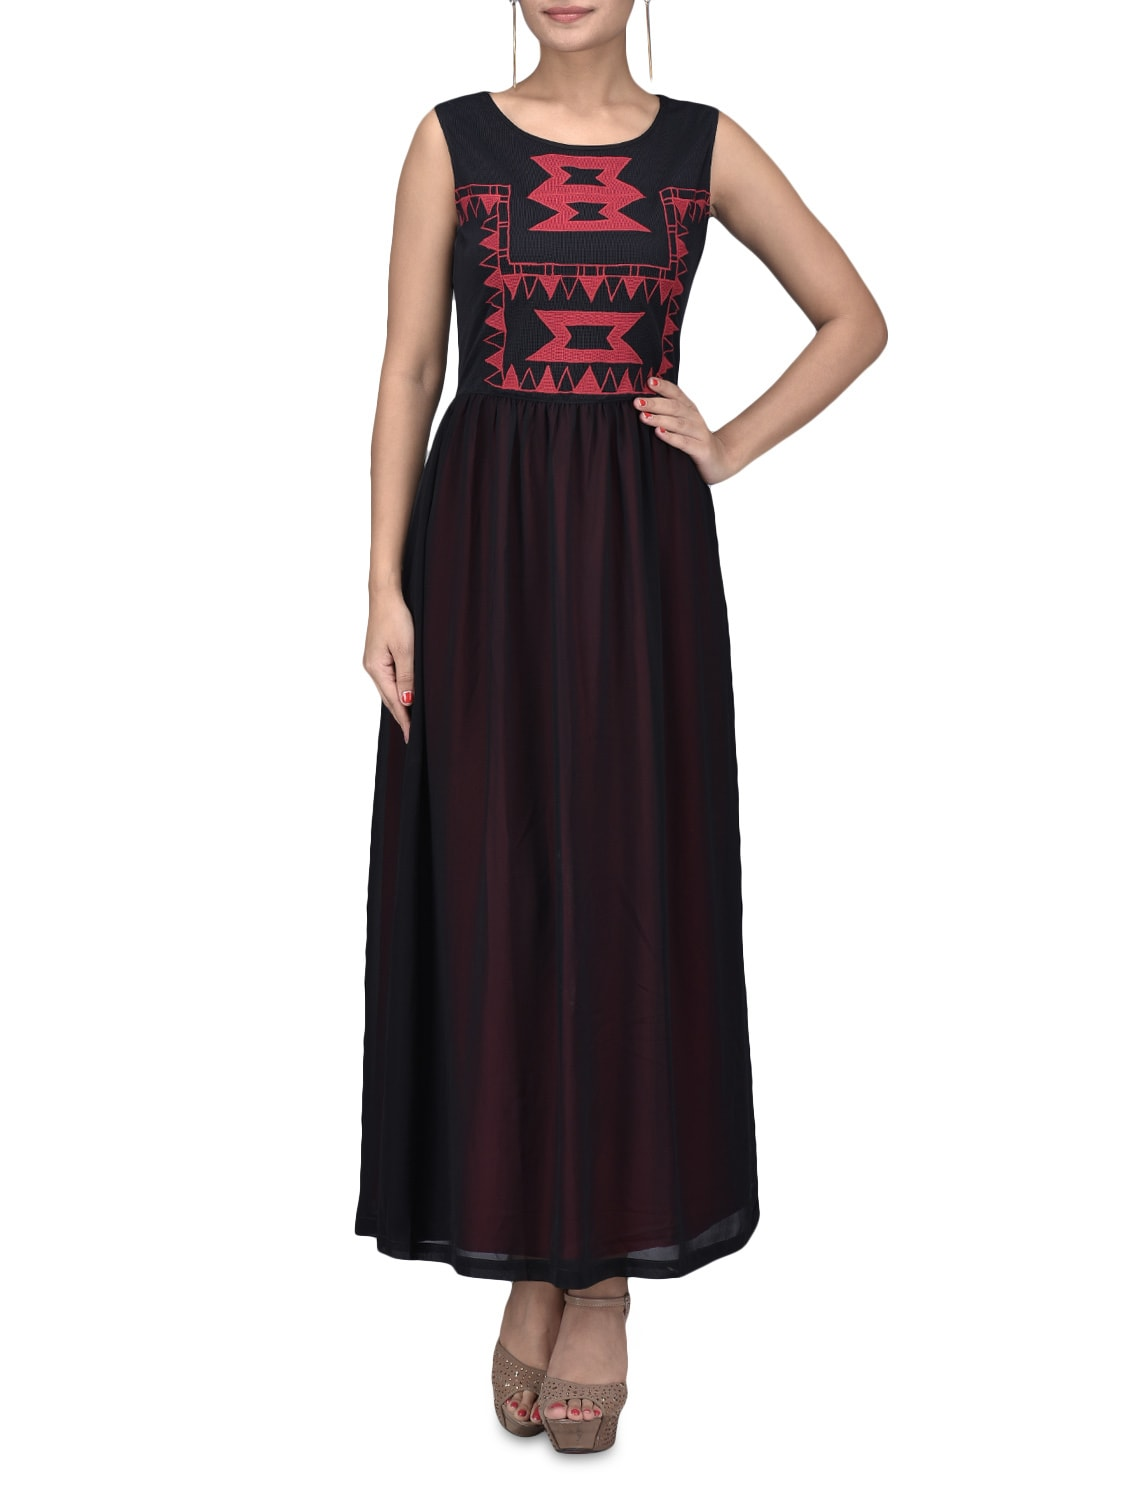 Black And Maroon Gathered Maxi Dress - By